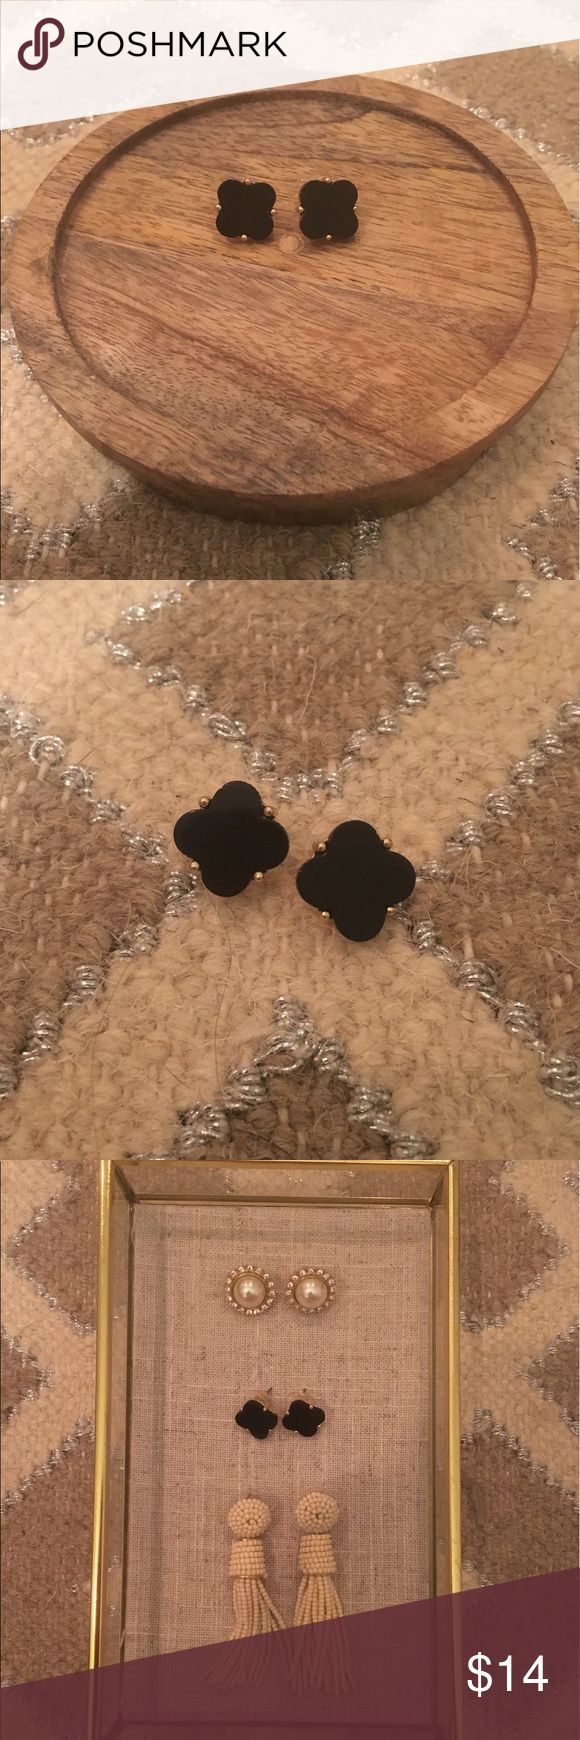 Beautiful black stud Earrings Brand new and never been worn before. Goes practically with anything and an easy way to make any outfit look cute! I have another pair that I wear all the time. So comfy! Kendra Scott Jewelry Earrings